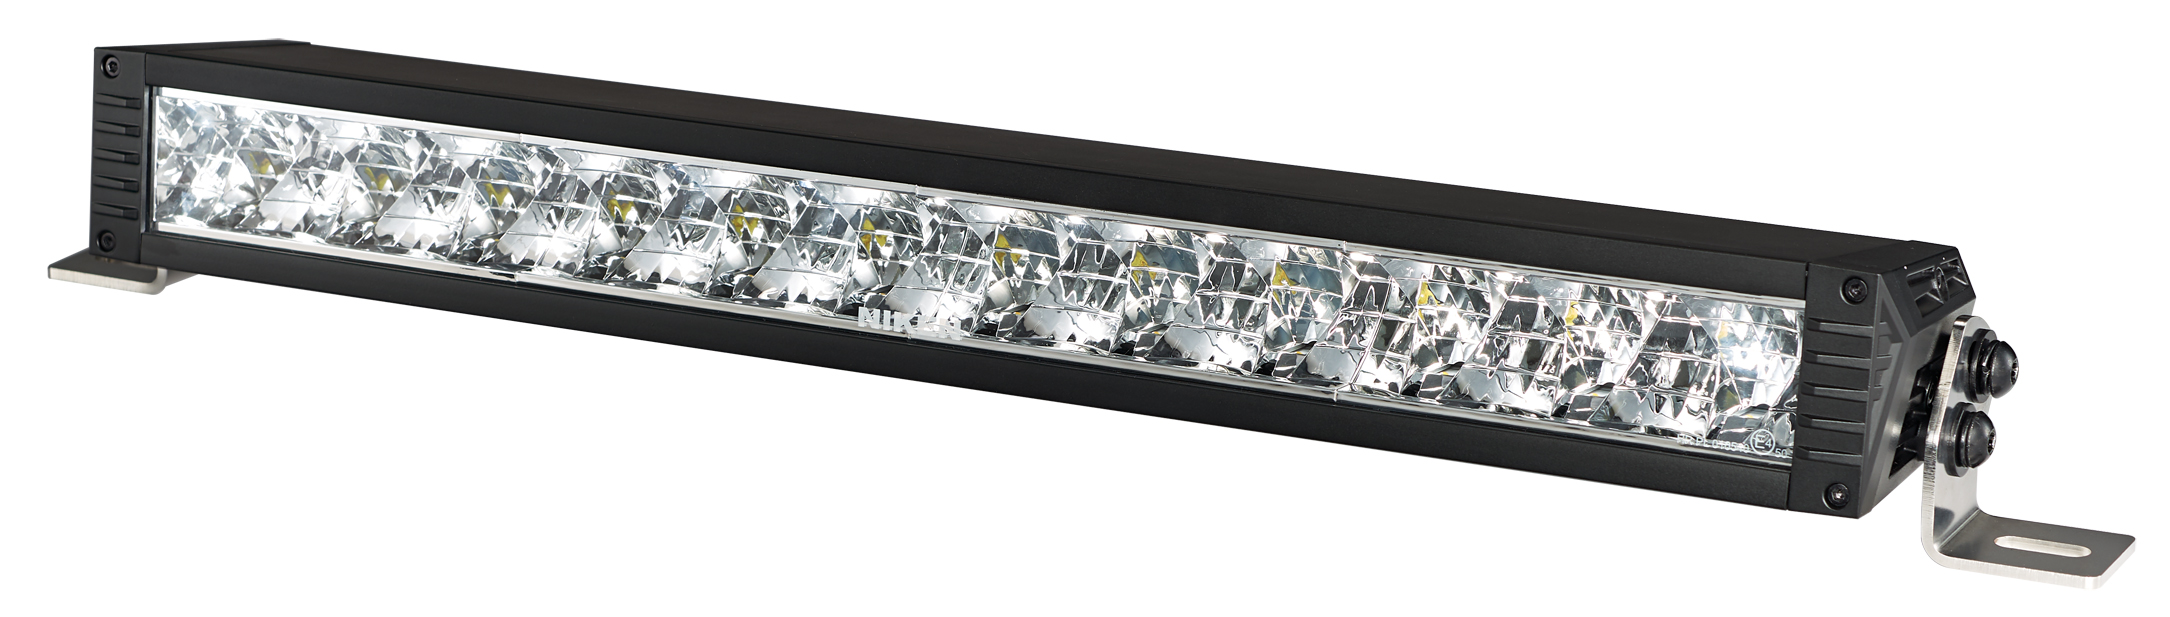 Bus LED Light Bar for Lighting Series made by NIKEN Vehicle Lighting Co., LTD. 首通股份有限公司 - MatchSupplier.com